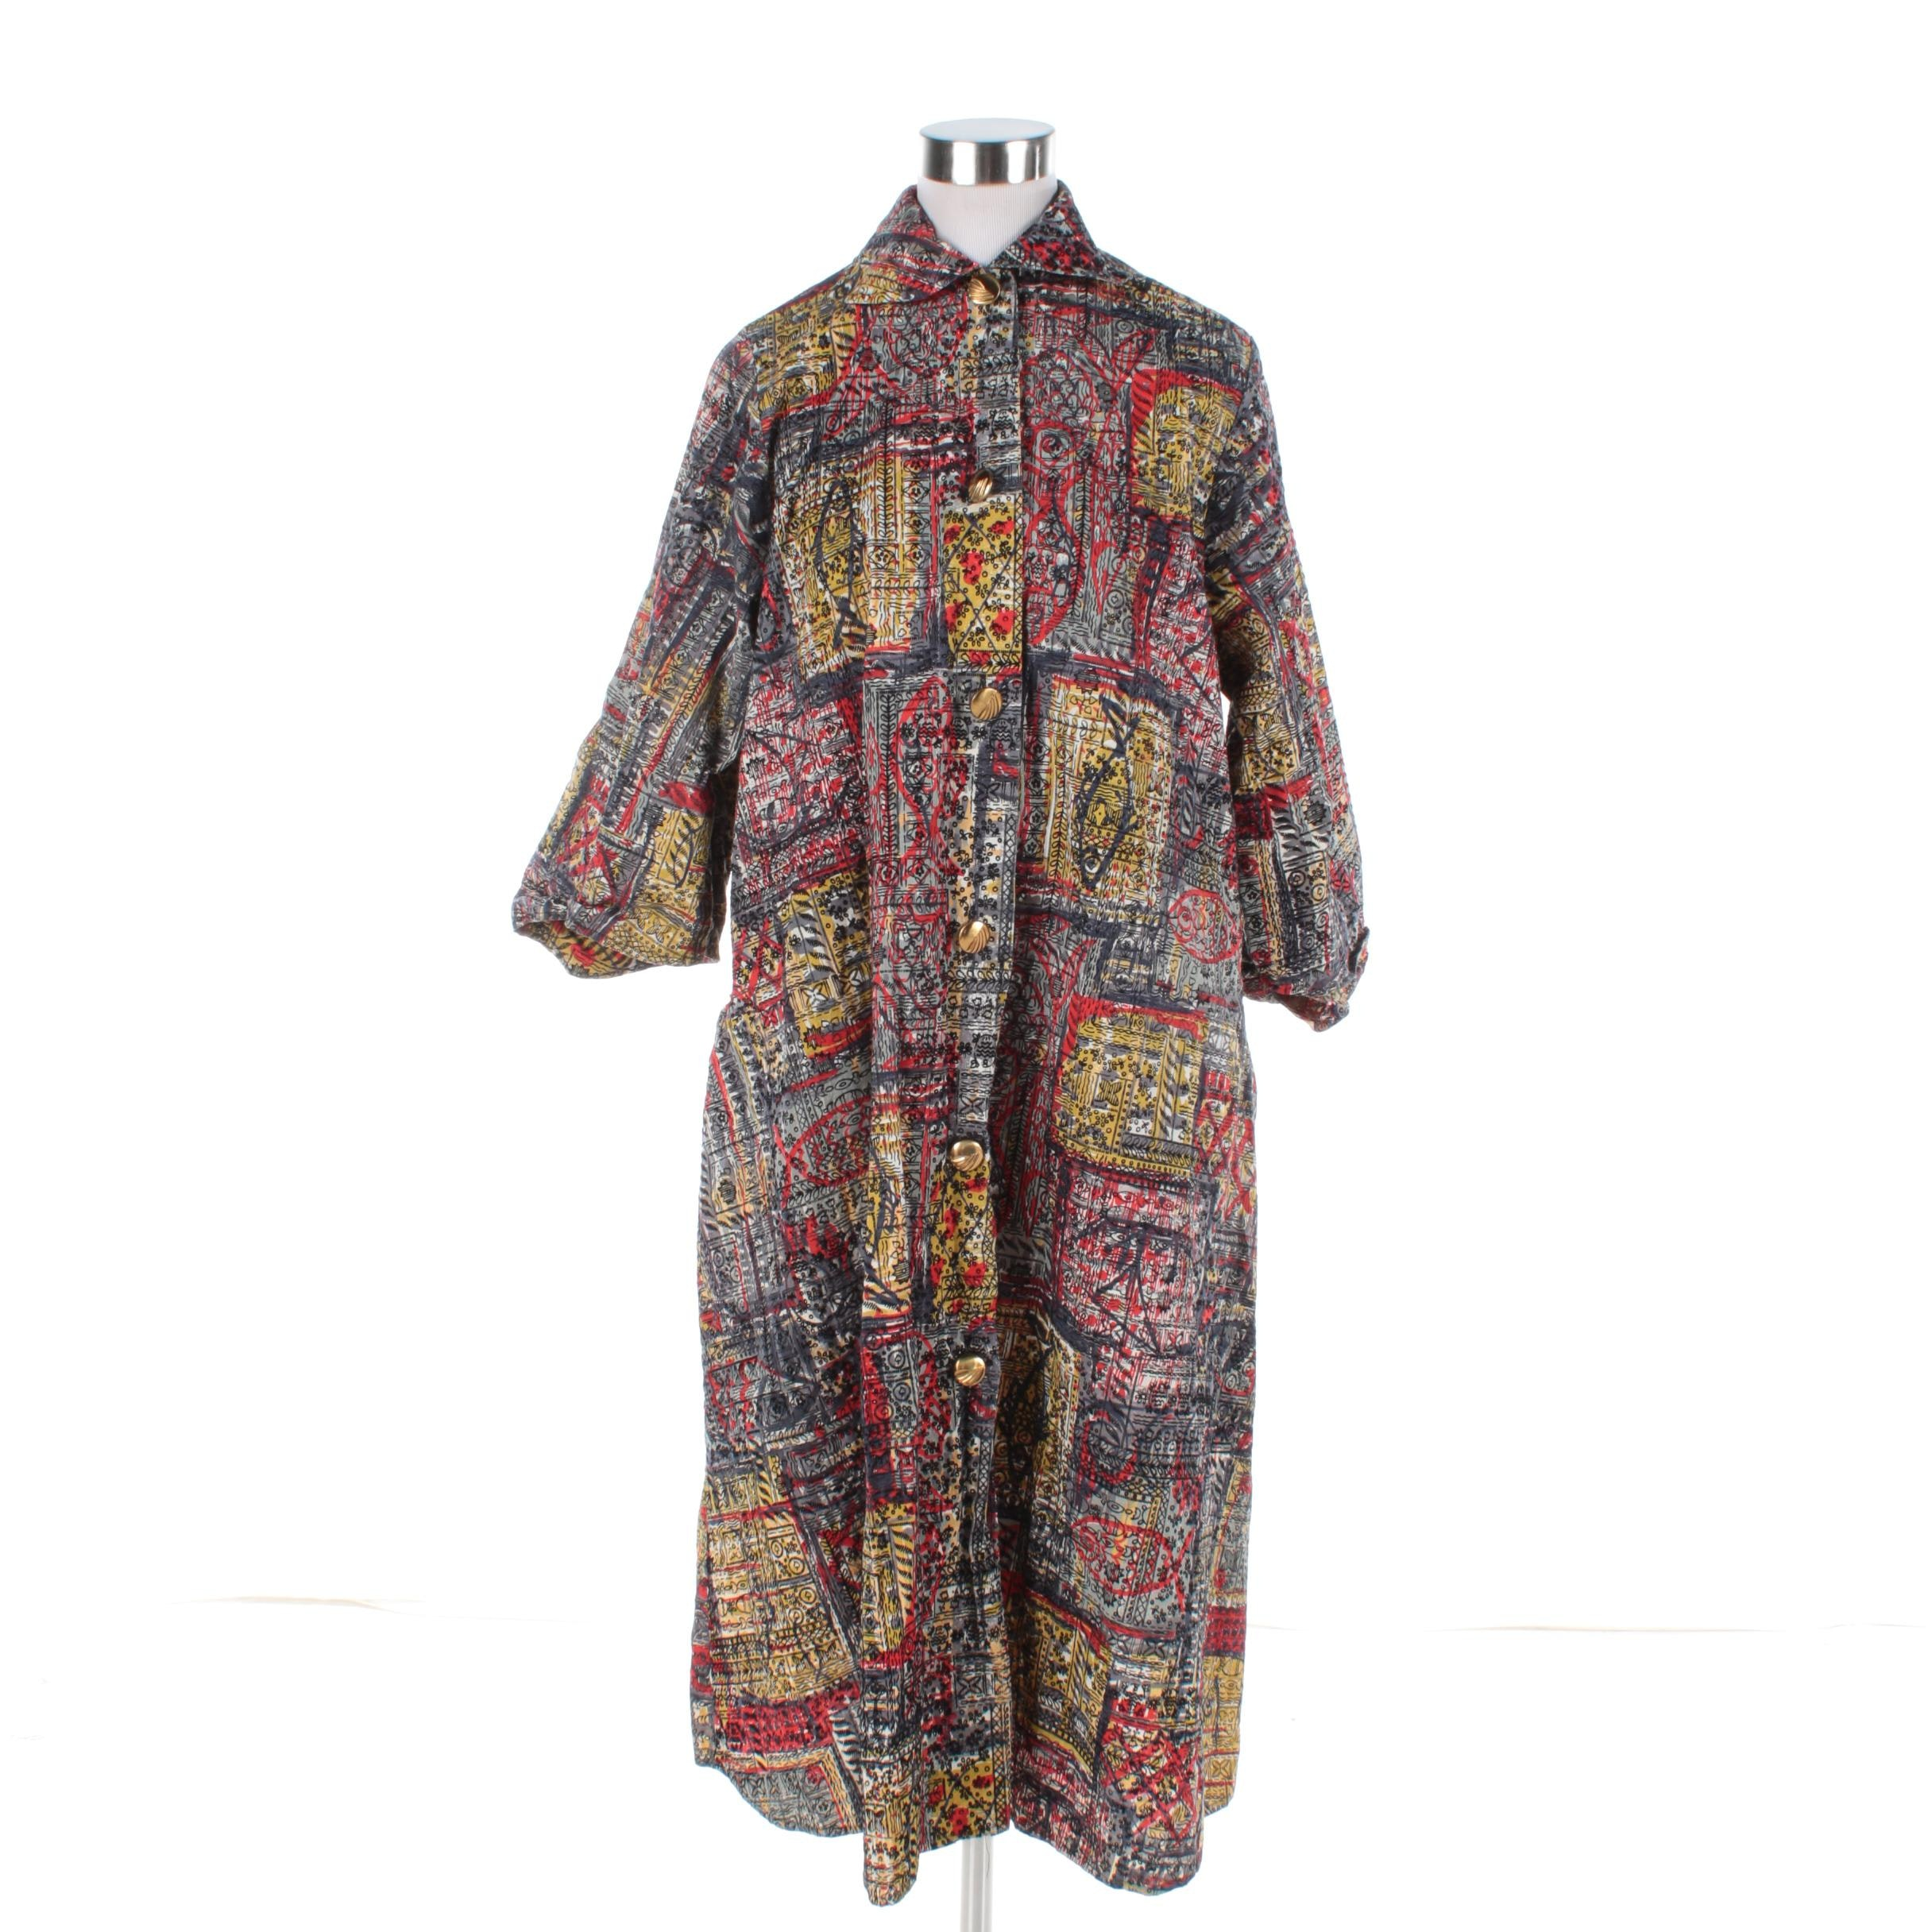 Women's Vintage Styled by Loungees Fish Novelty Print Shirt Dress